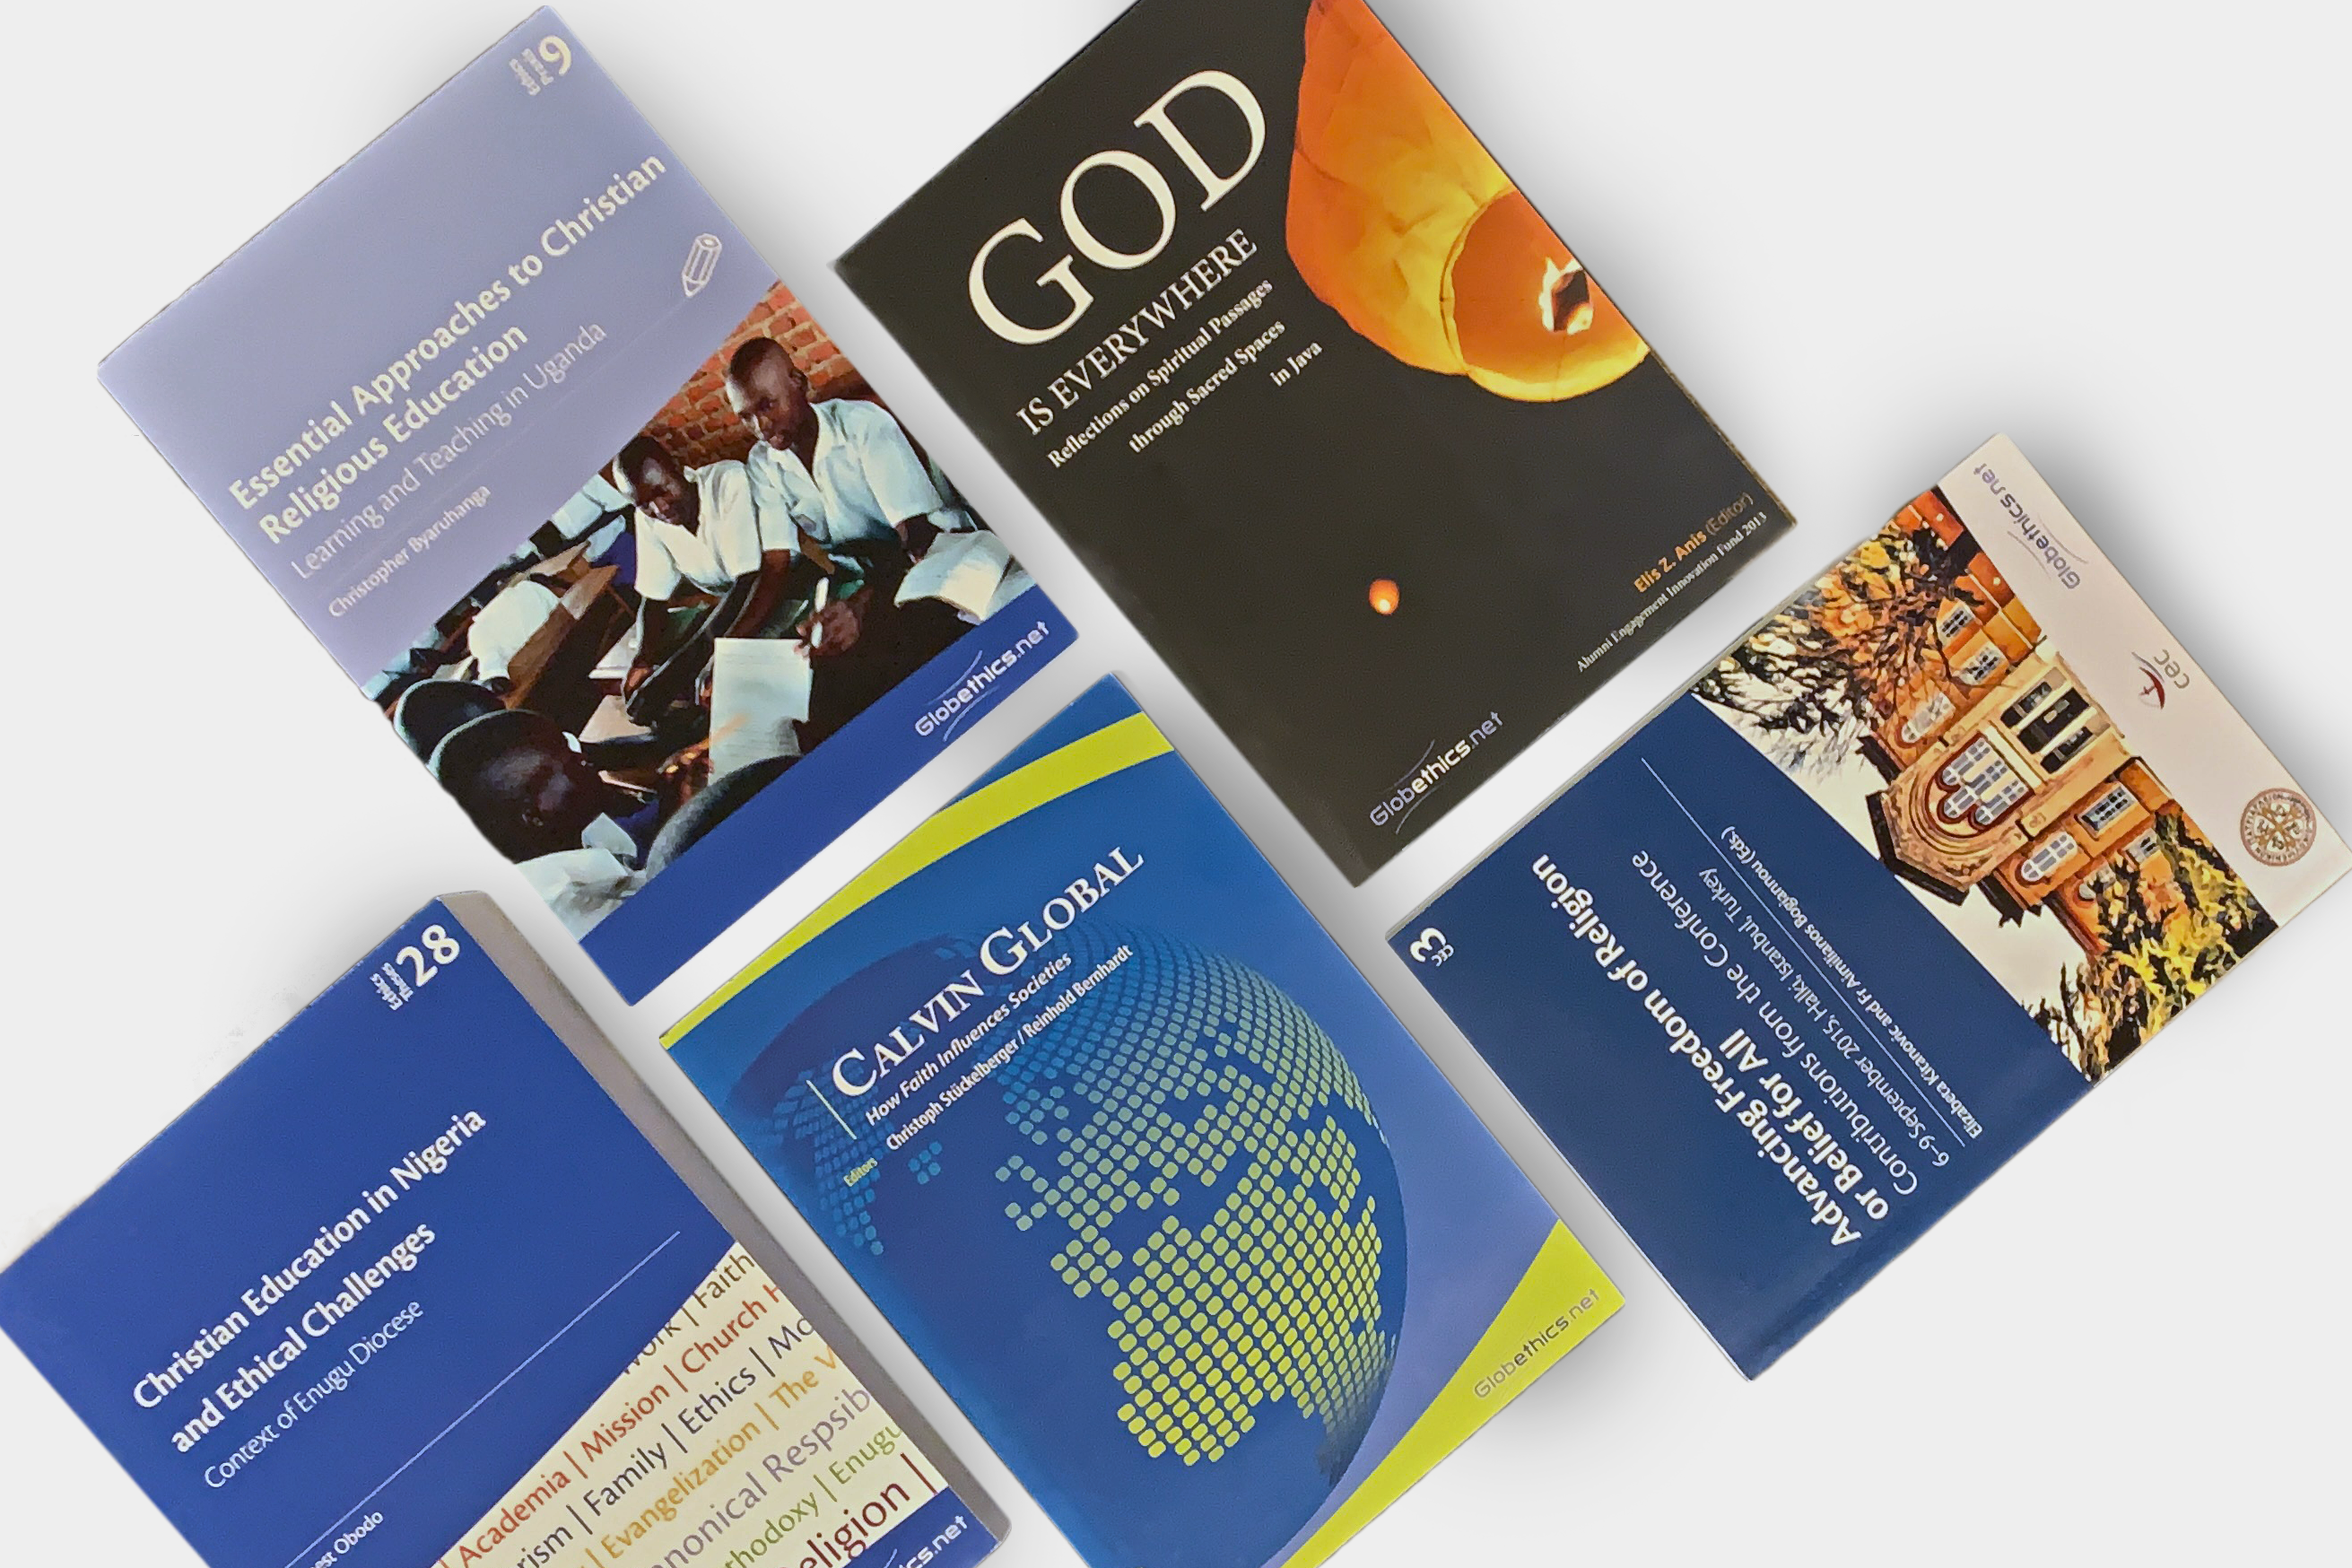 Publications on theology and ecumenisim